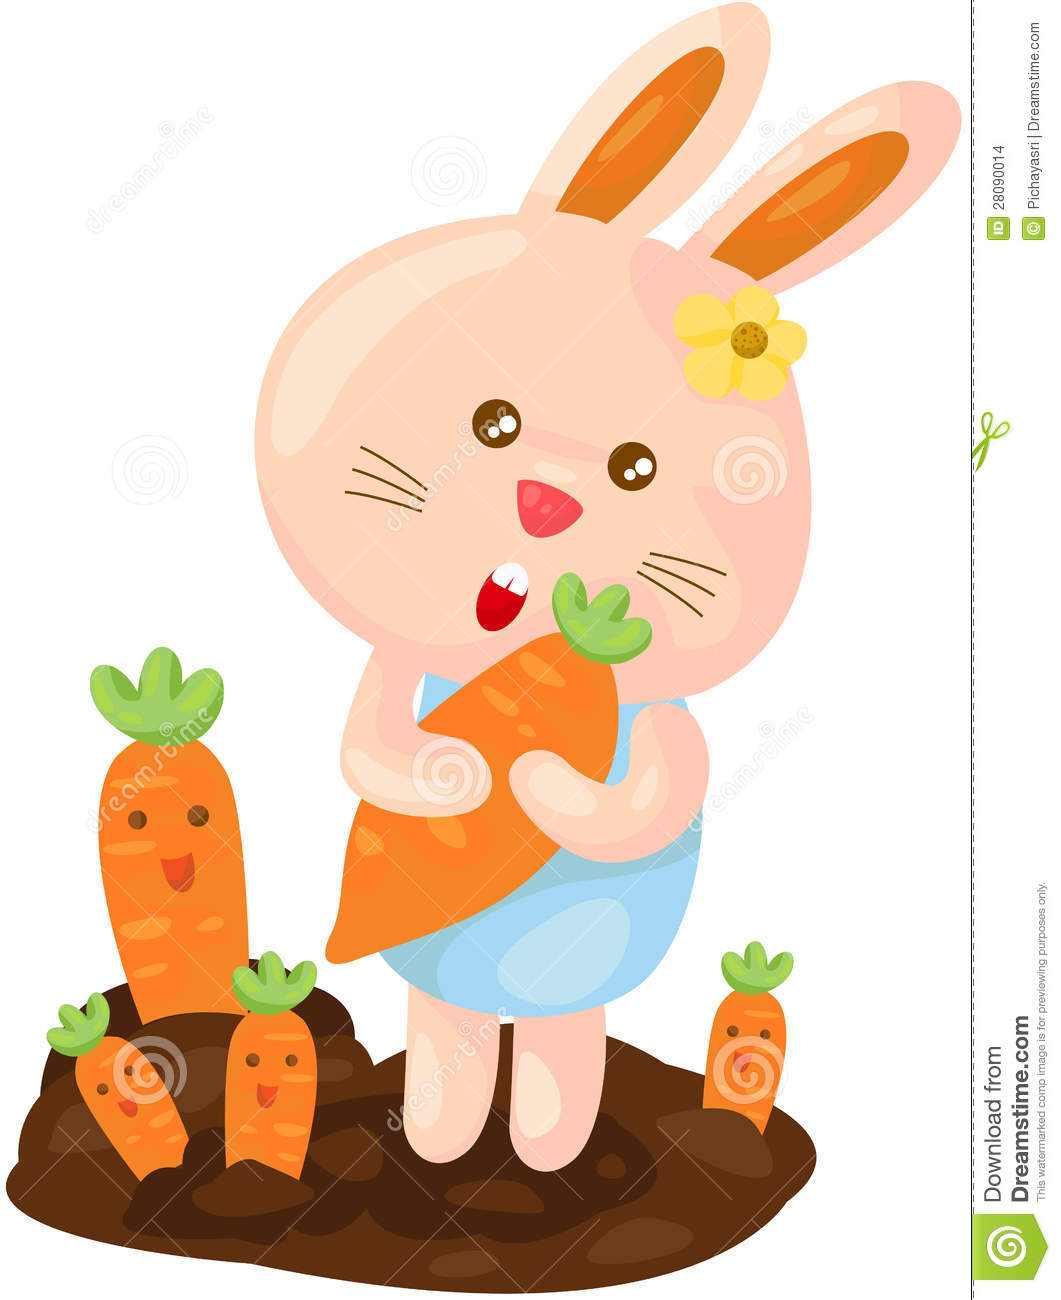 Cute bunny with carrot stock vector. Illustration of ...